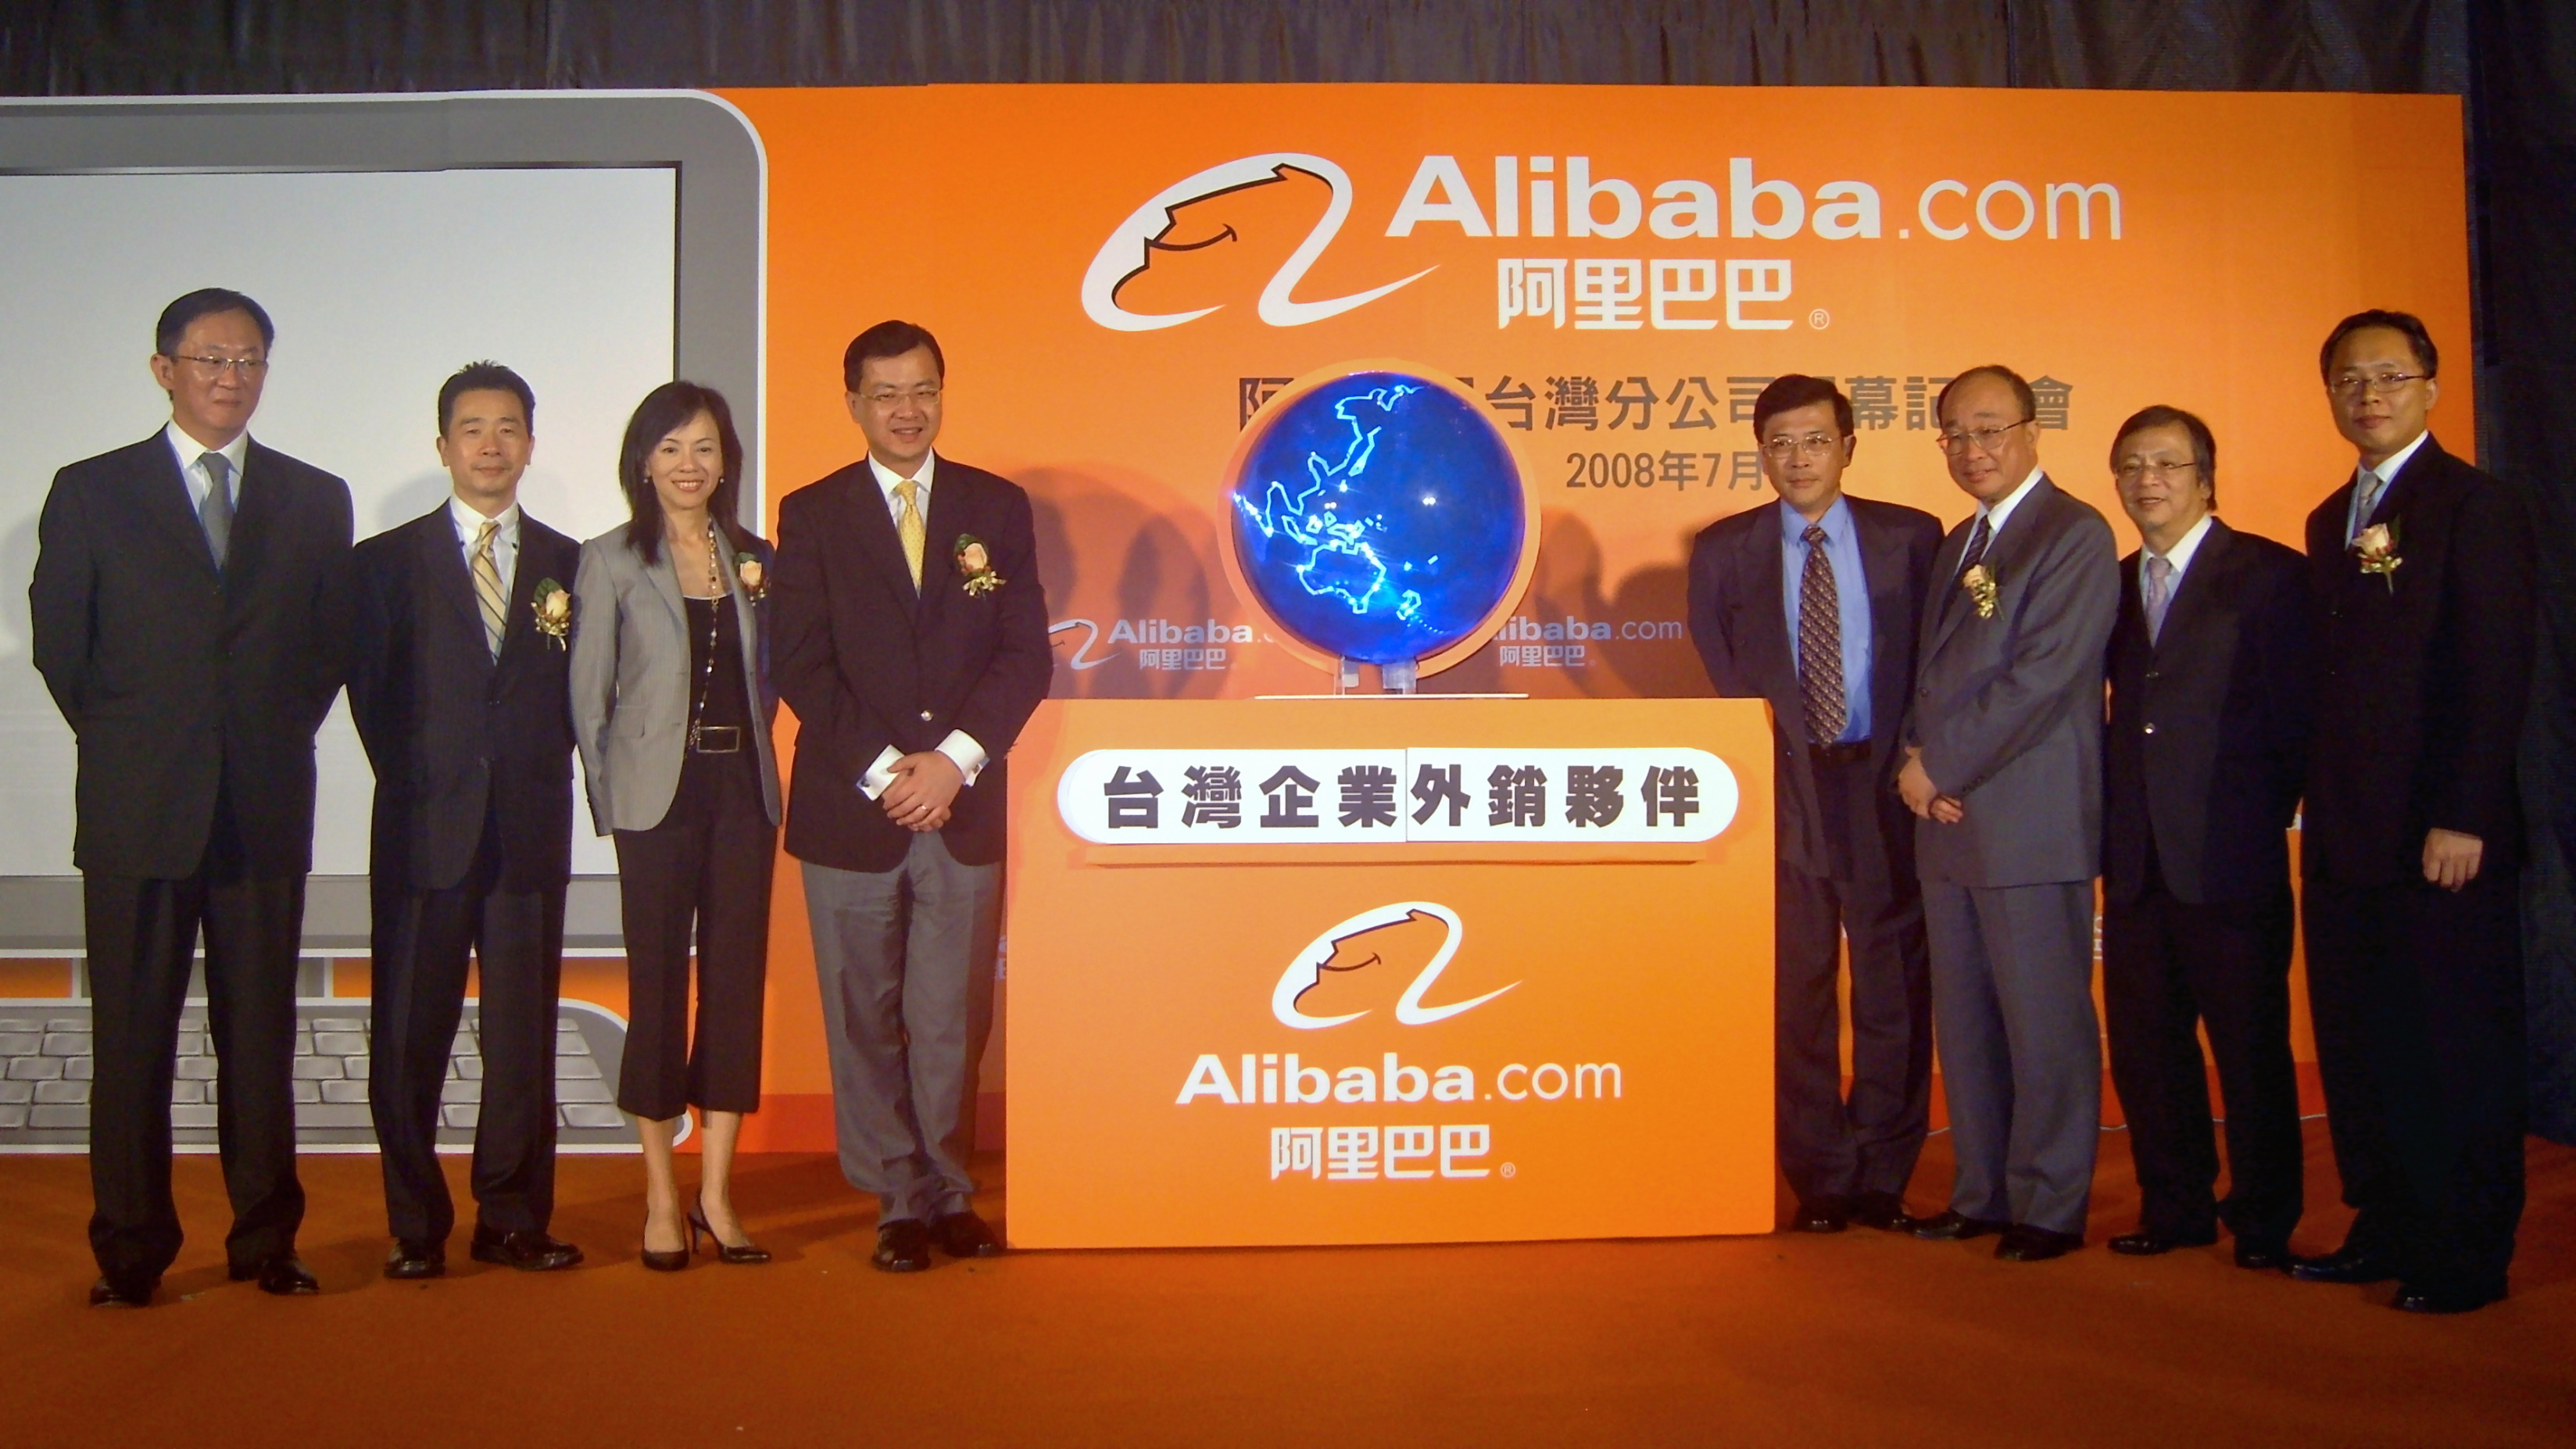 bpm on alibaba Top 70 business process management software: open source and free bpm tools : review of best business process management software including ibm blueworks live, kissflow bpm, zoho creator, appian, nintex, alfresco activiti, oracle business process management, pega 7 bpm, heflo, k2 blackpearl, visio, intellect accelerate, opentext mbpm, openedge .